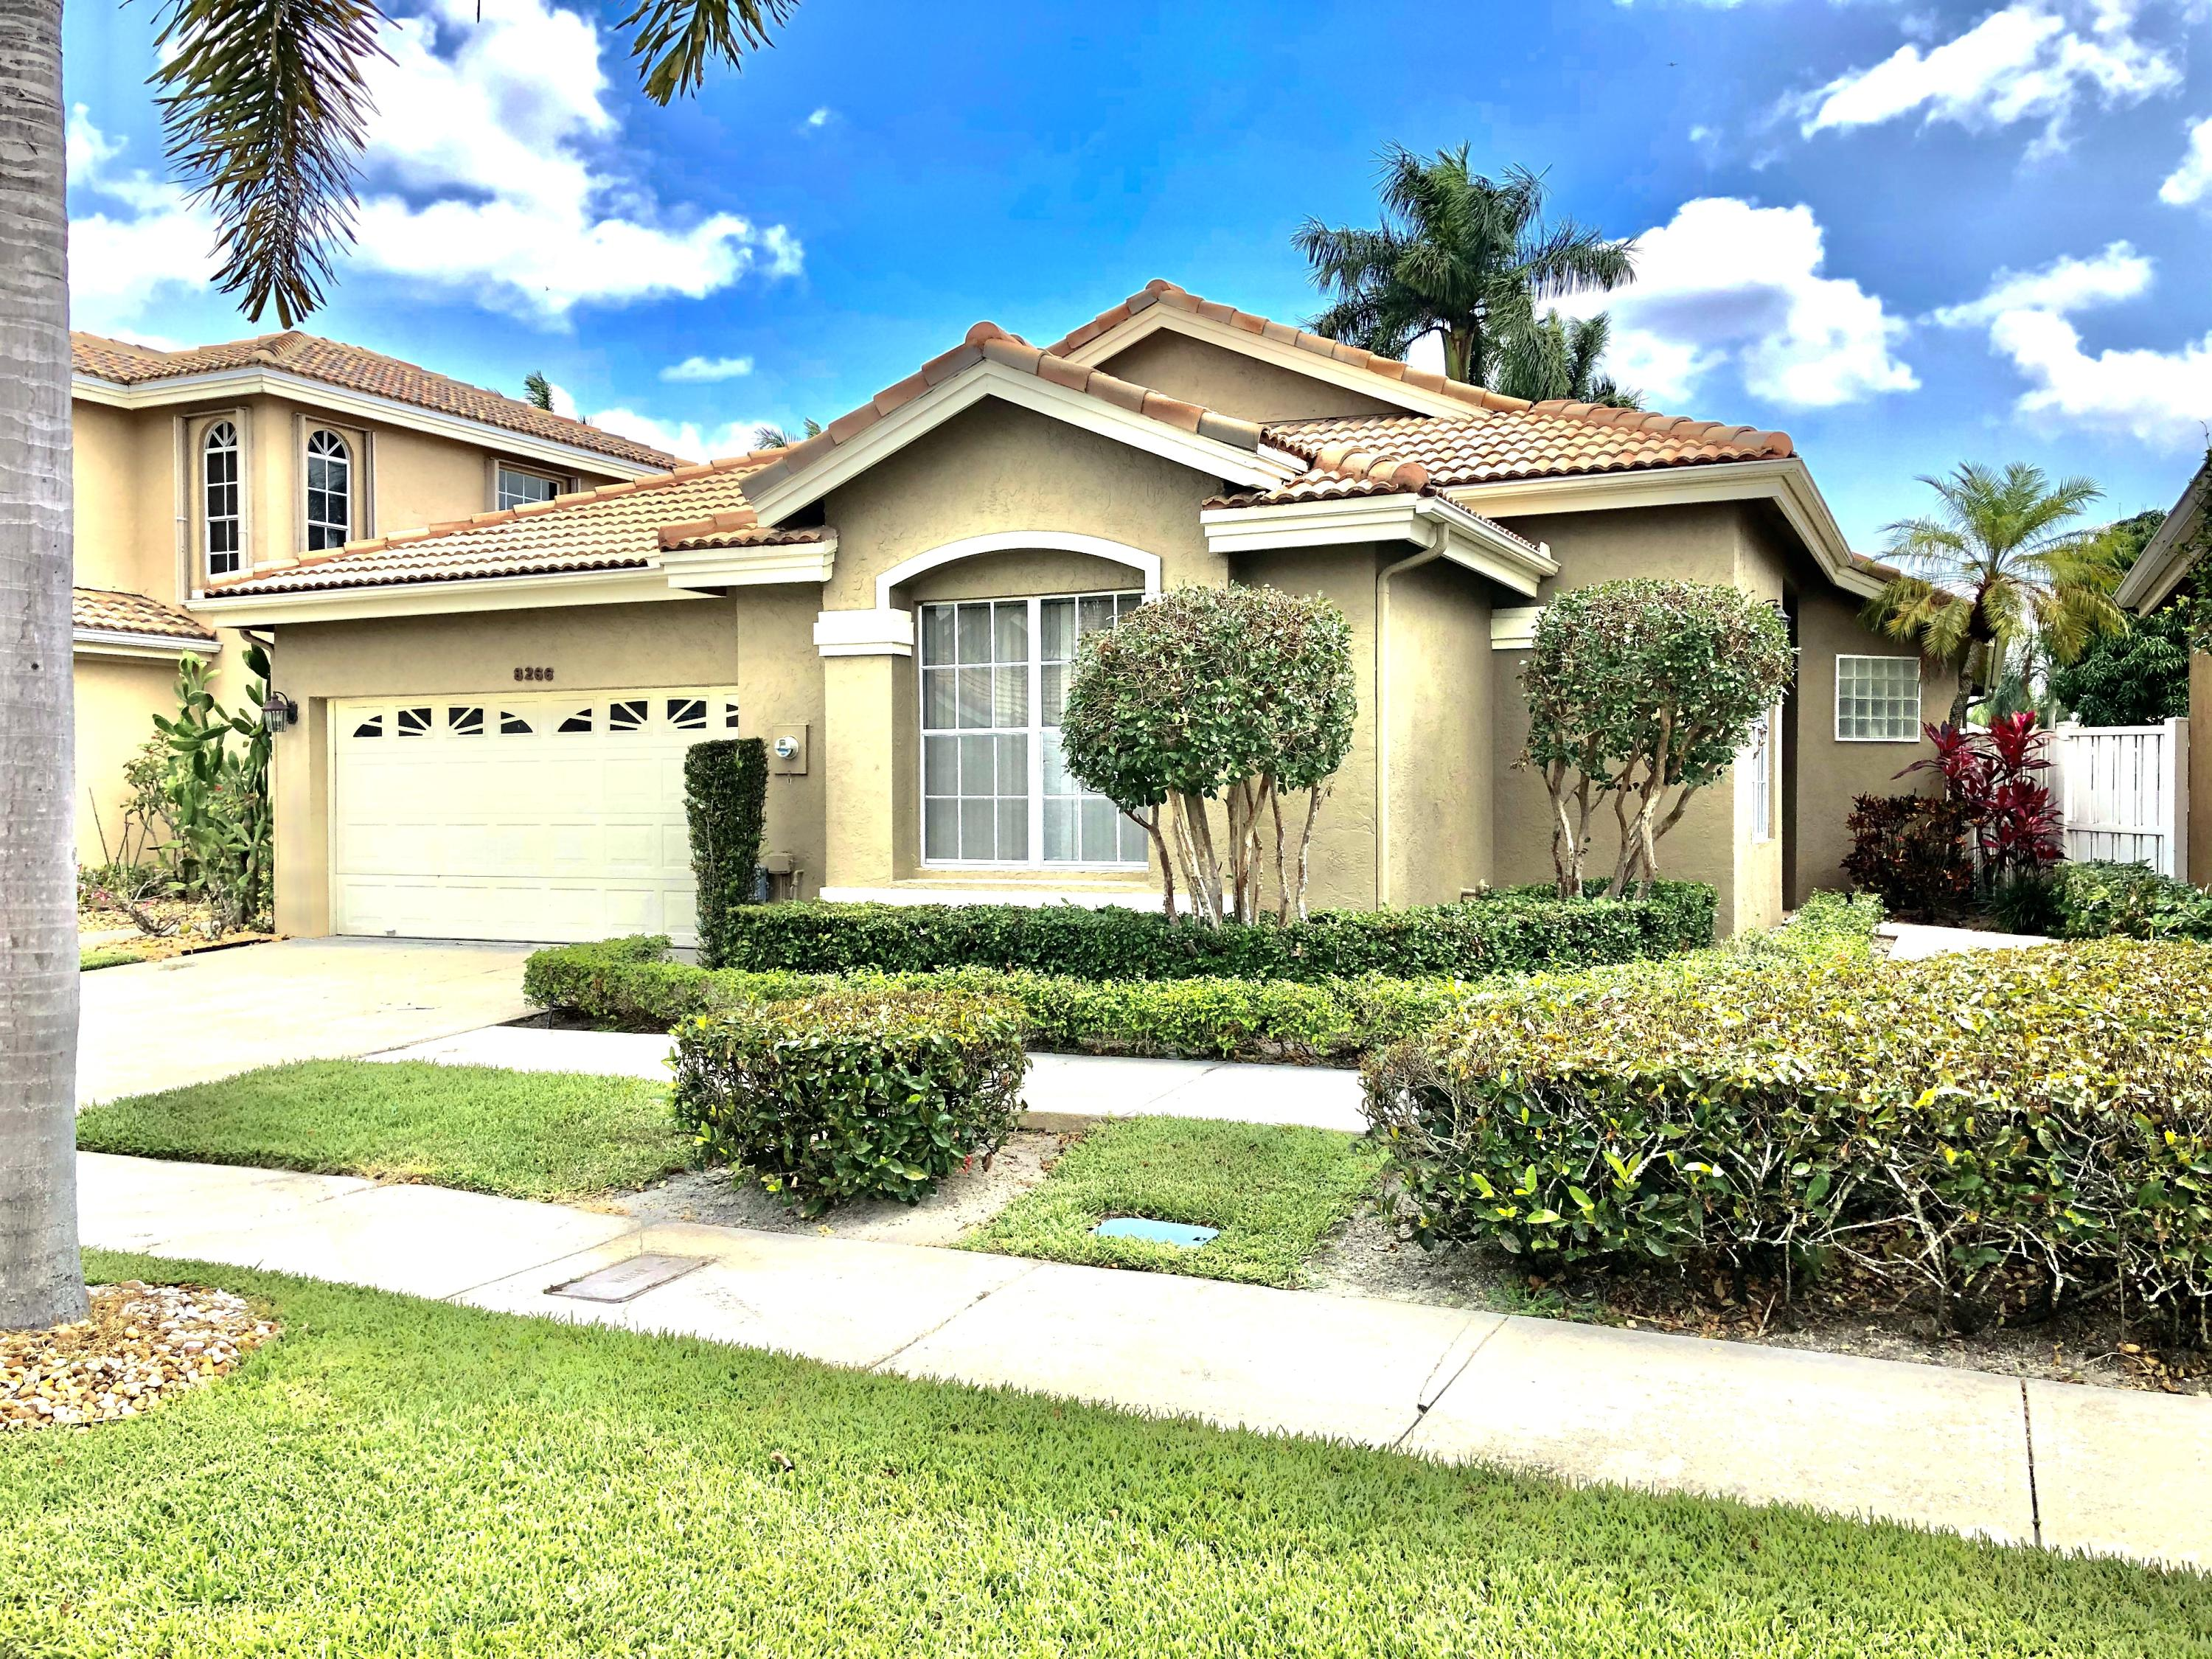 Details for 8266 Quail Meadow Way, West Palm Beach, FL 33412